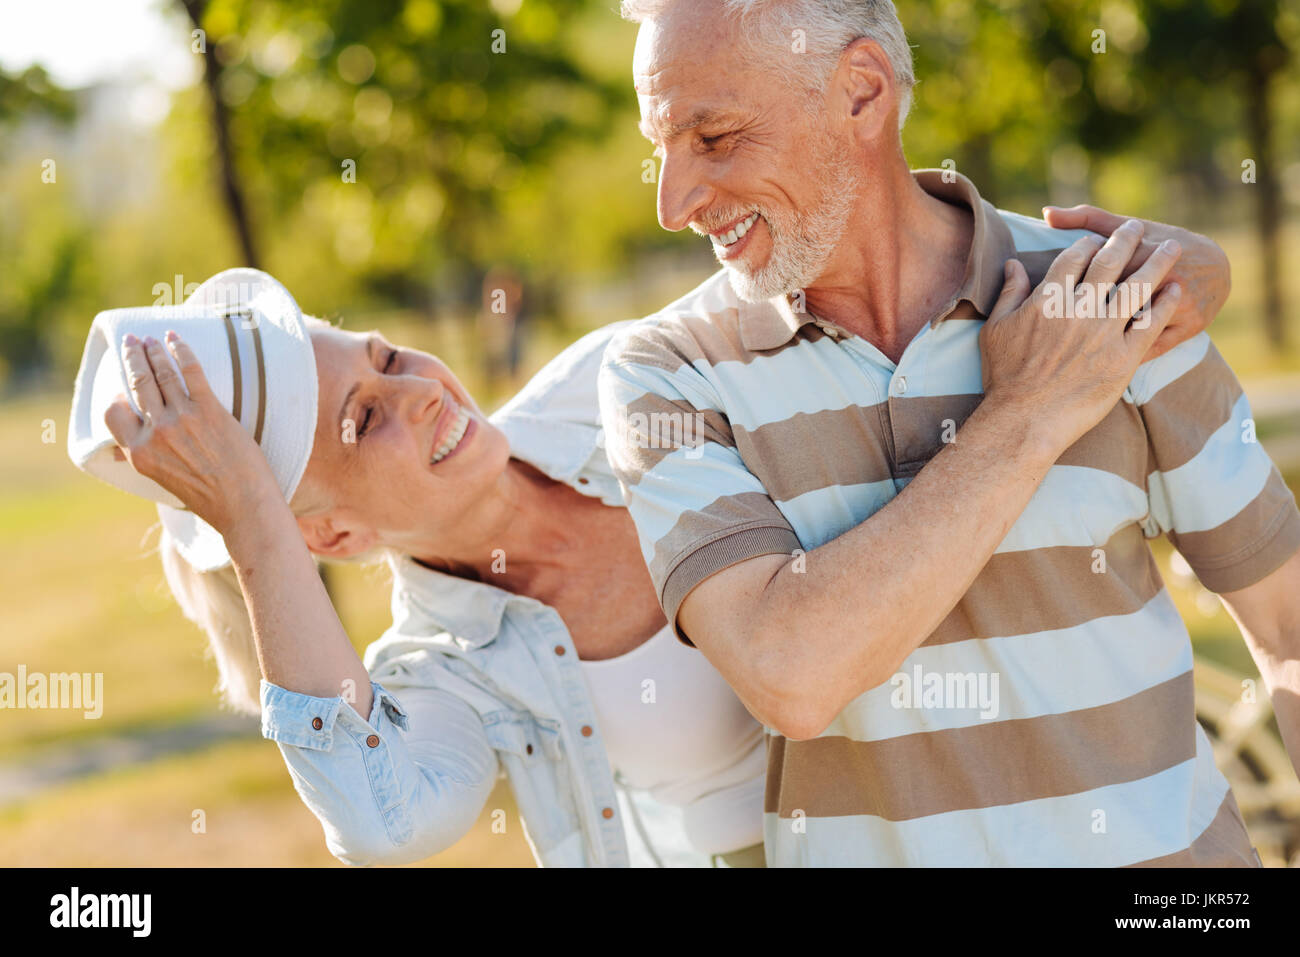 Joyful mature people playing tricks together - Stock Image